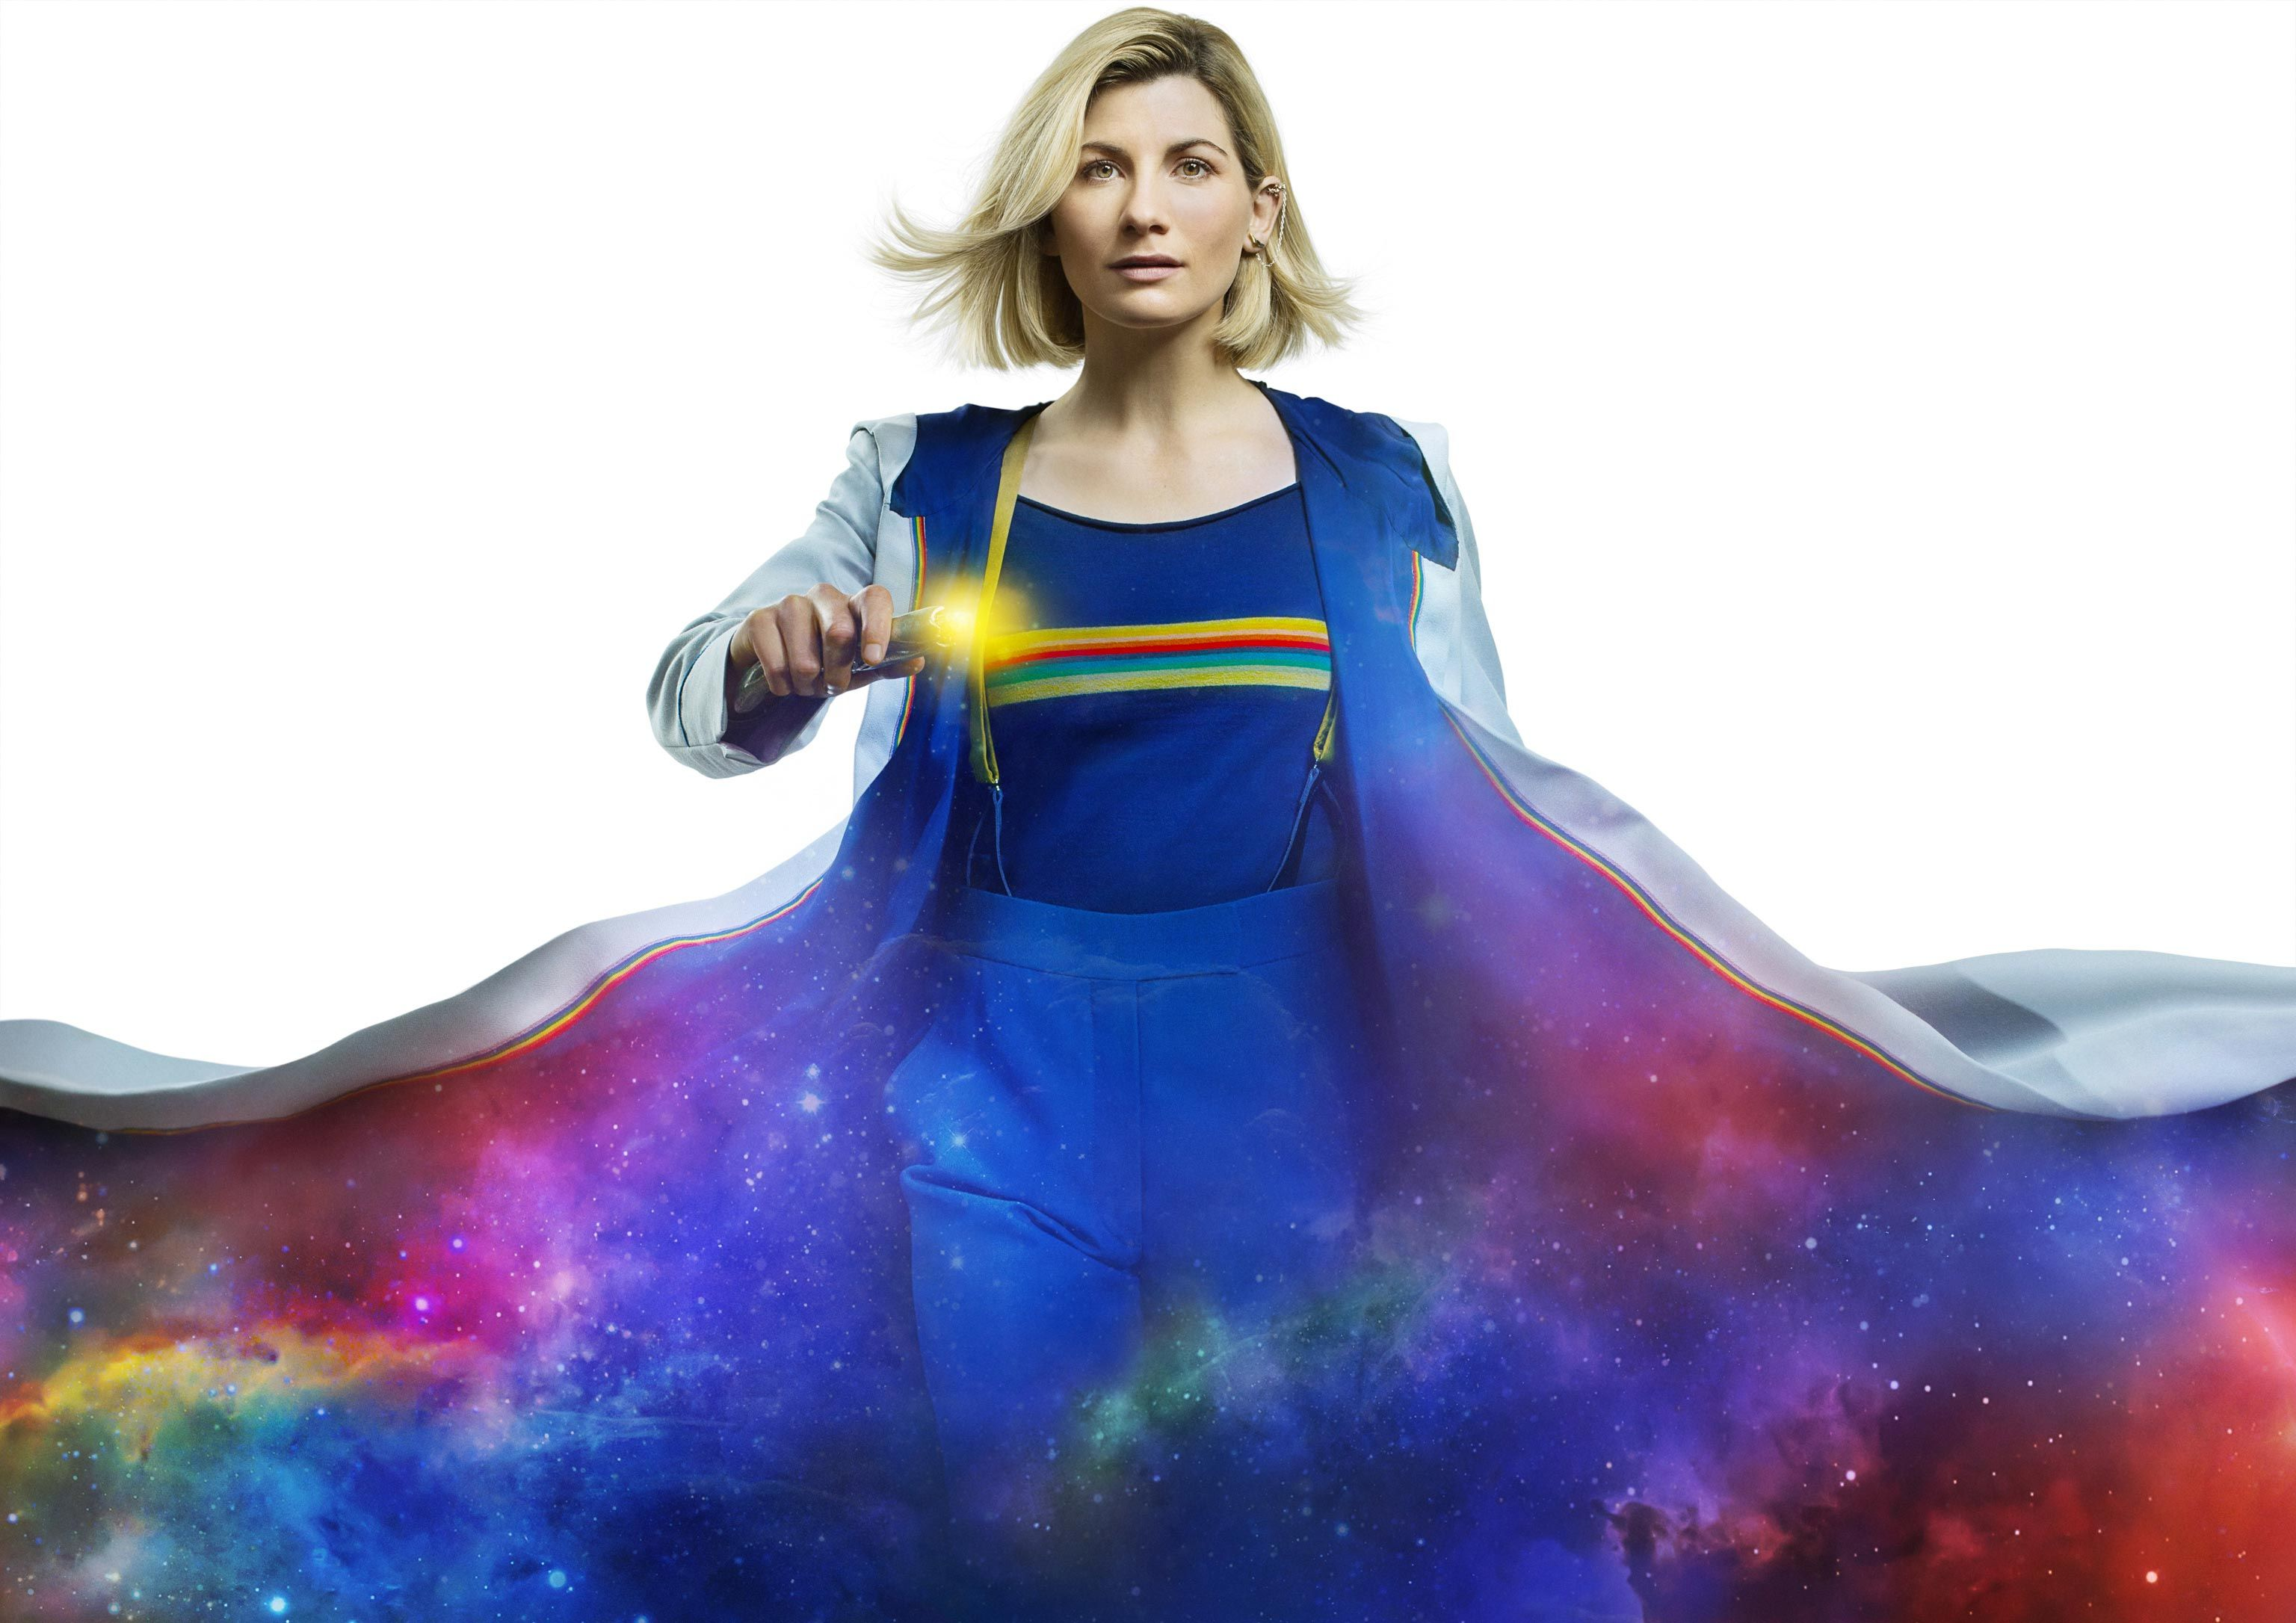 Doctor Who star Jodie Whittaker confirms her future on the series